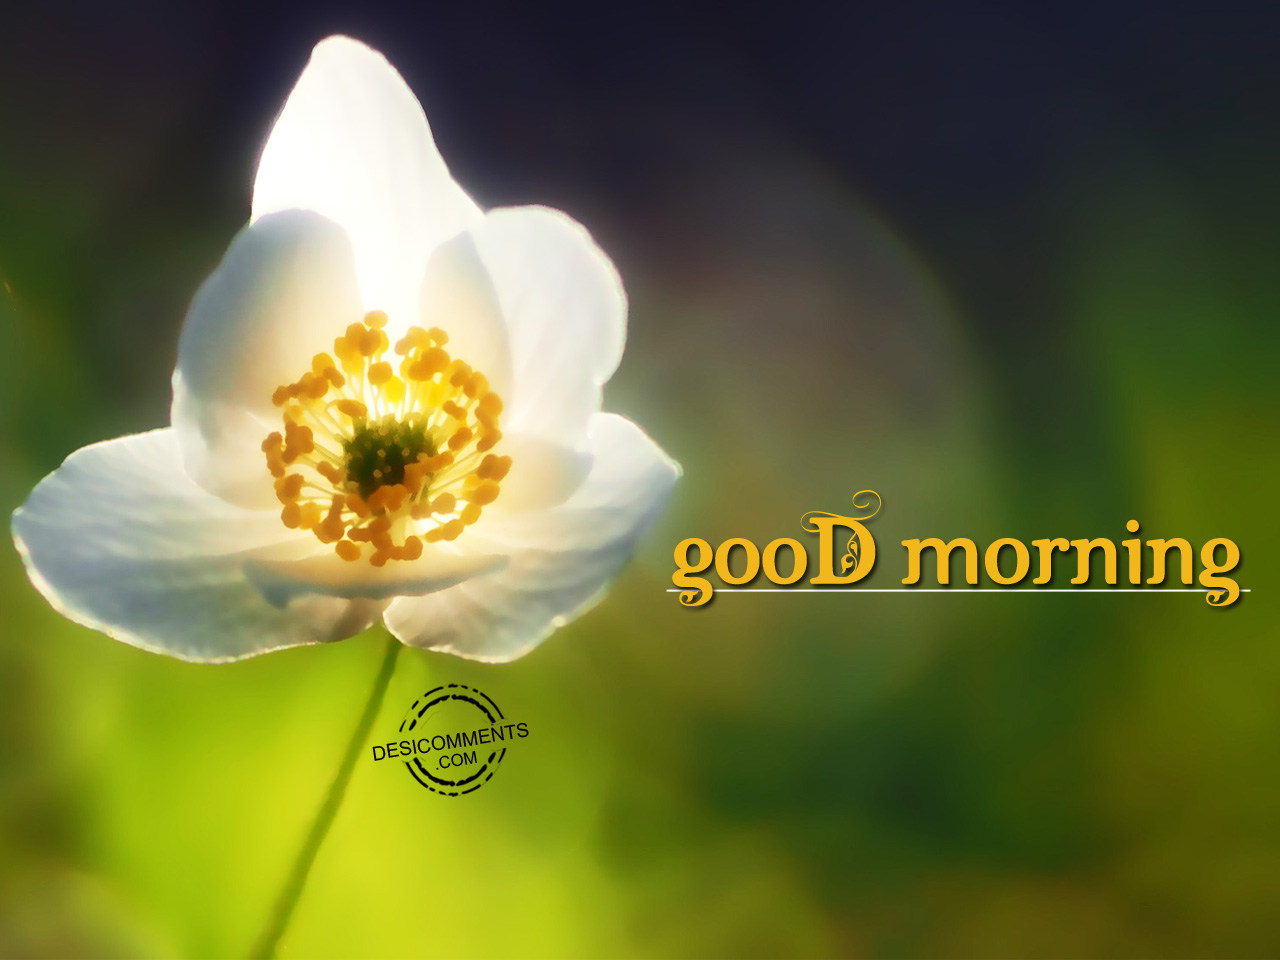 Good morning pictures images graphics for facebook for Good comments on pic